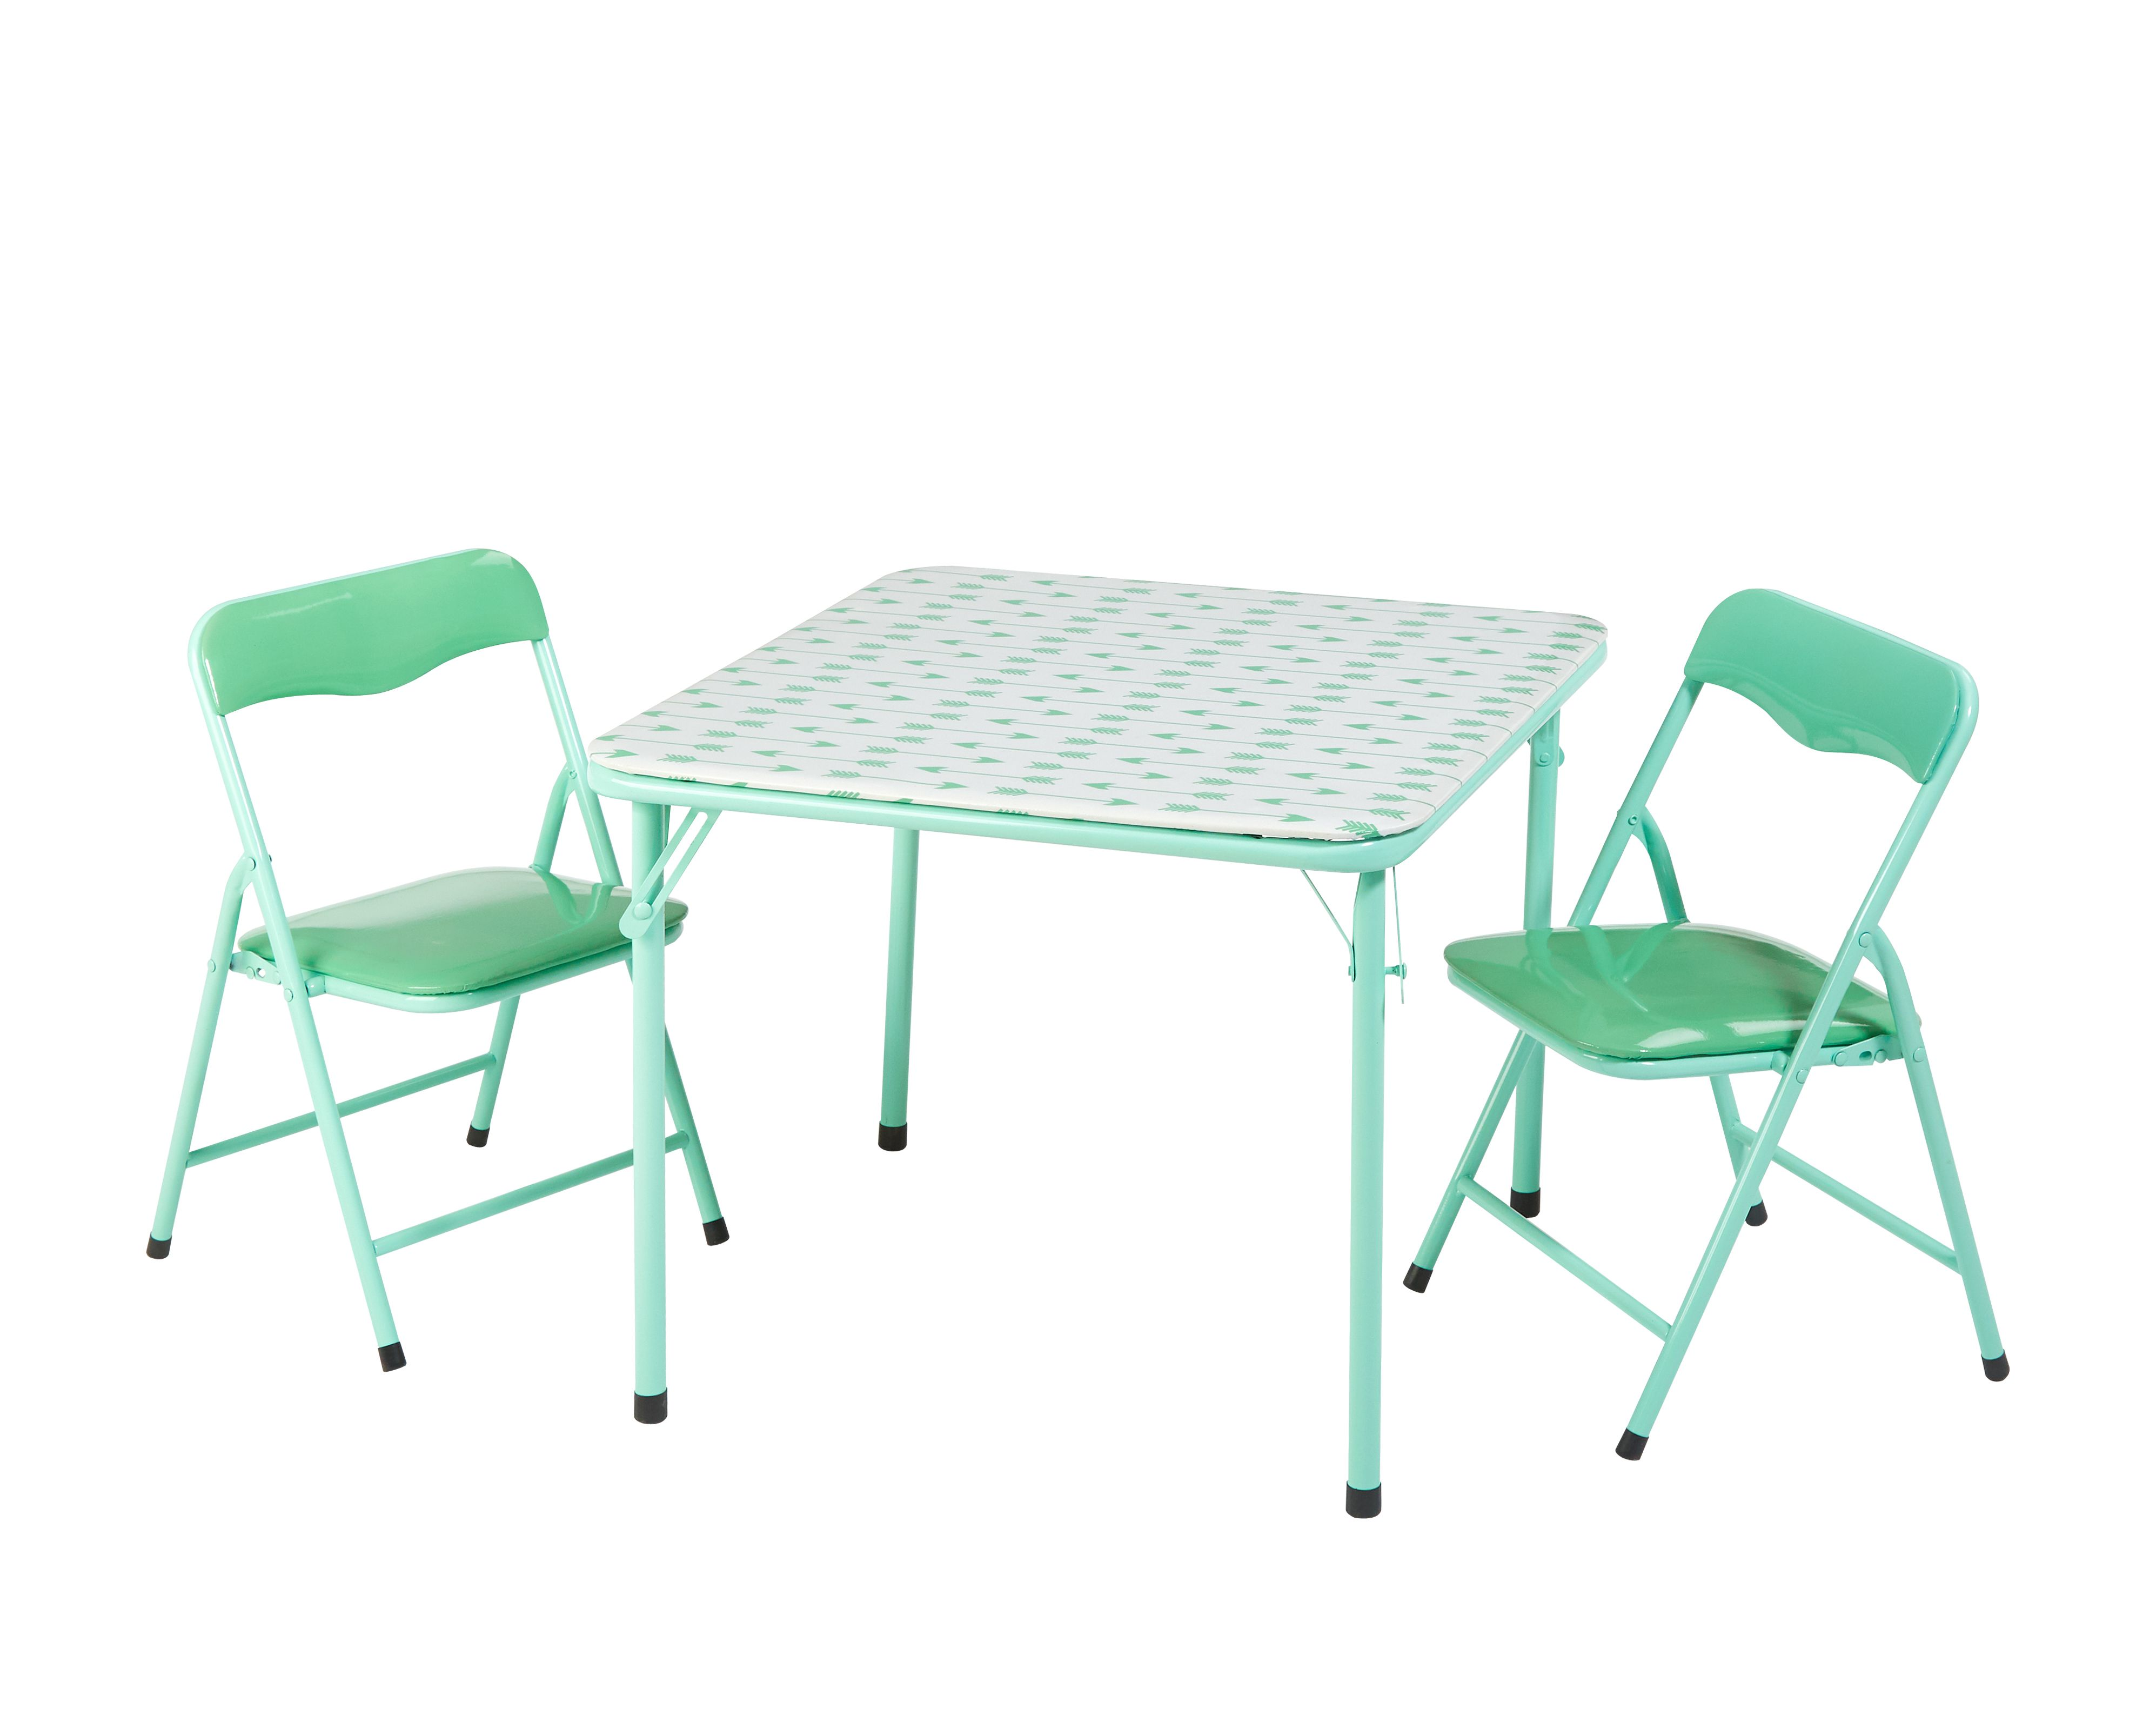 American Kids Cleo Metal Folding 3 Piece Table and Chair